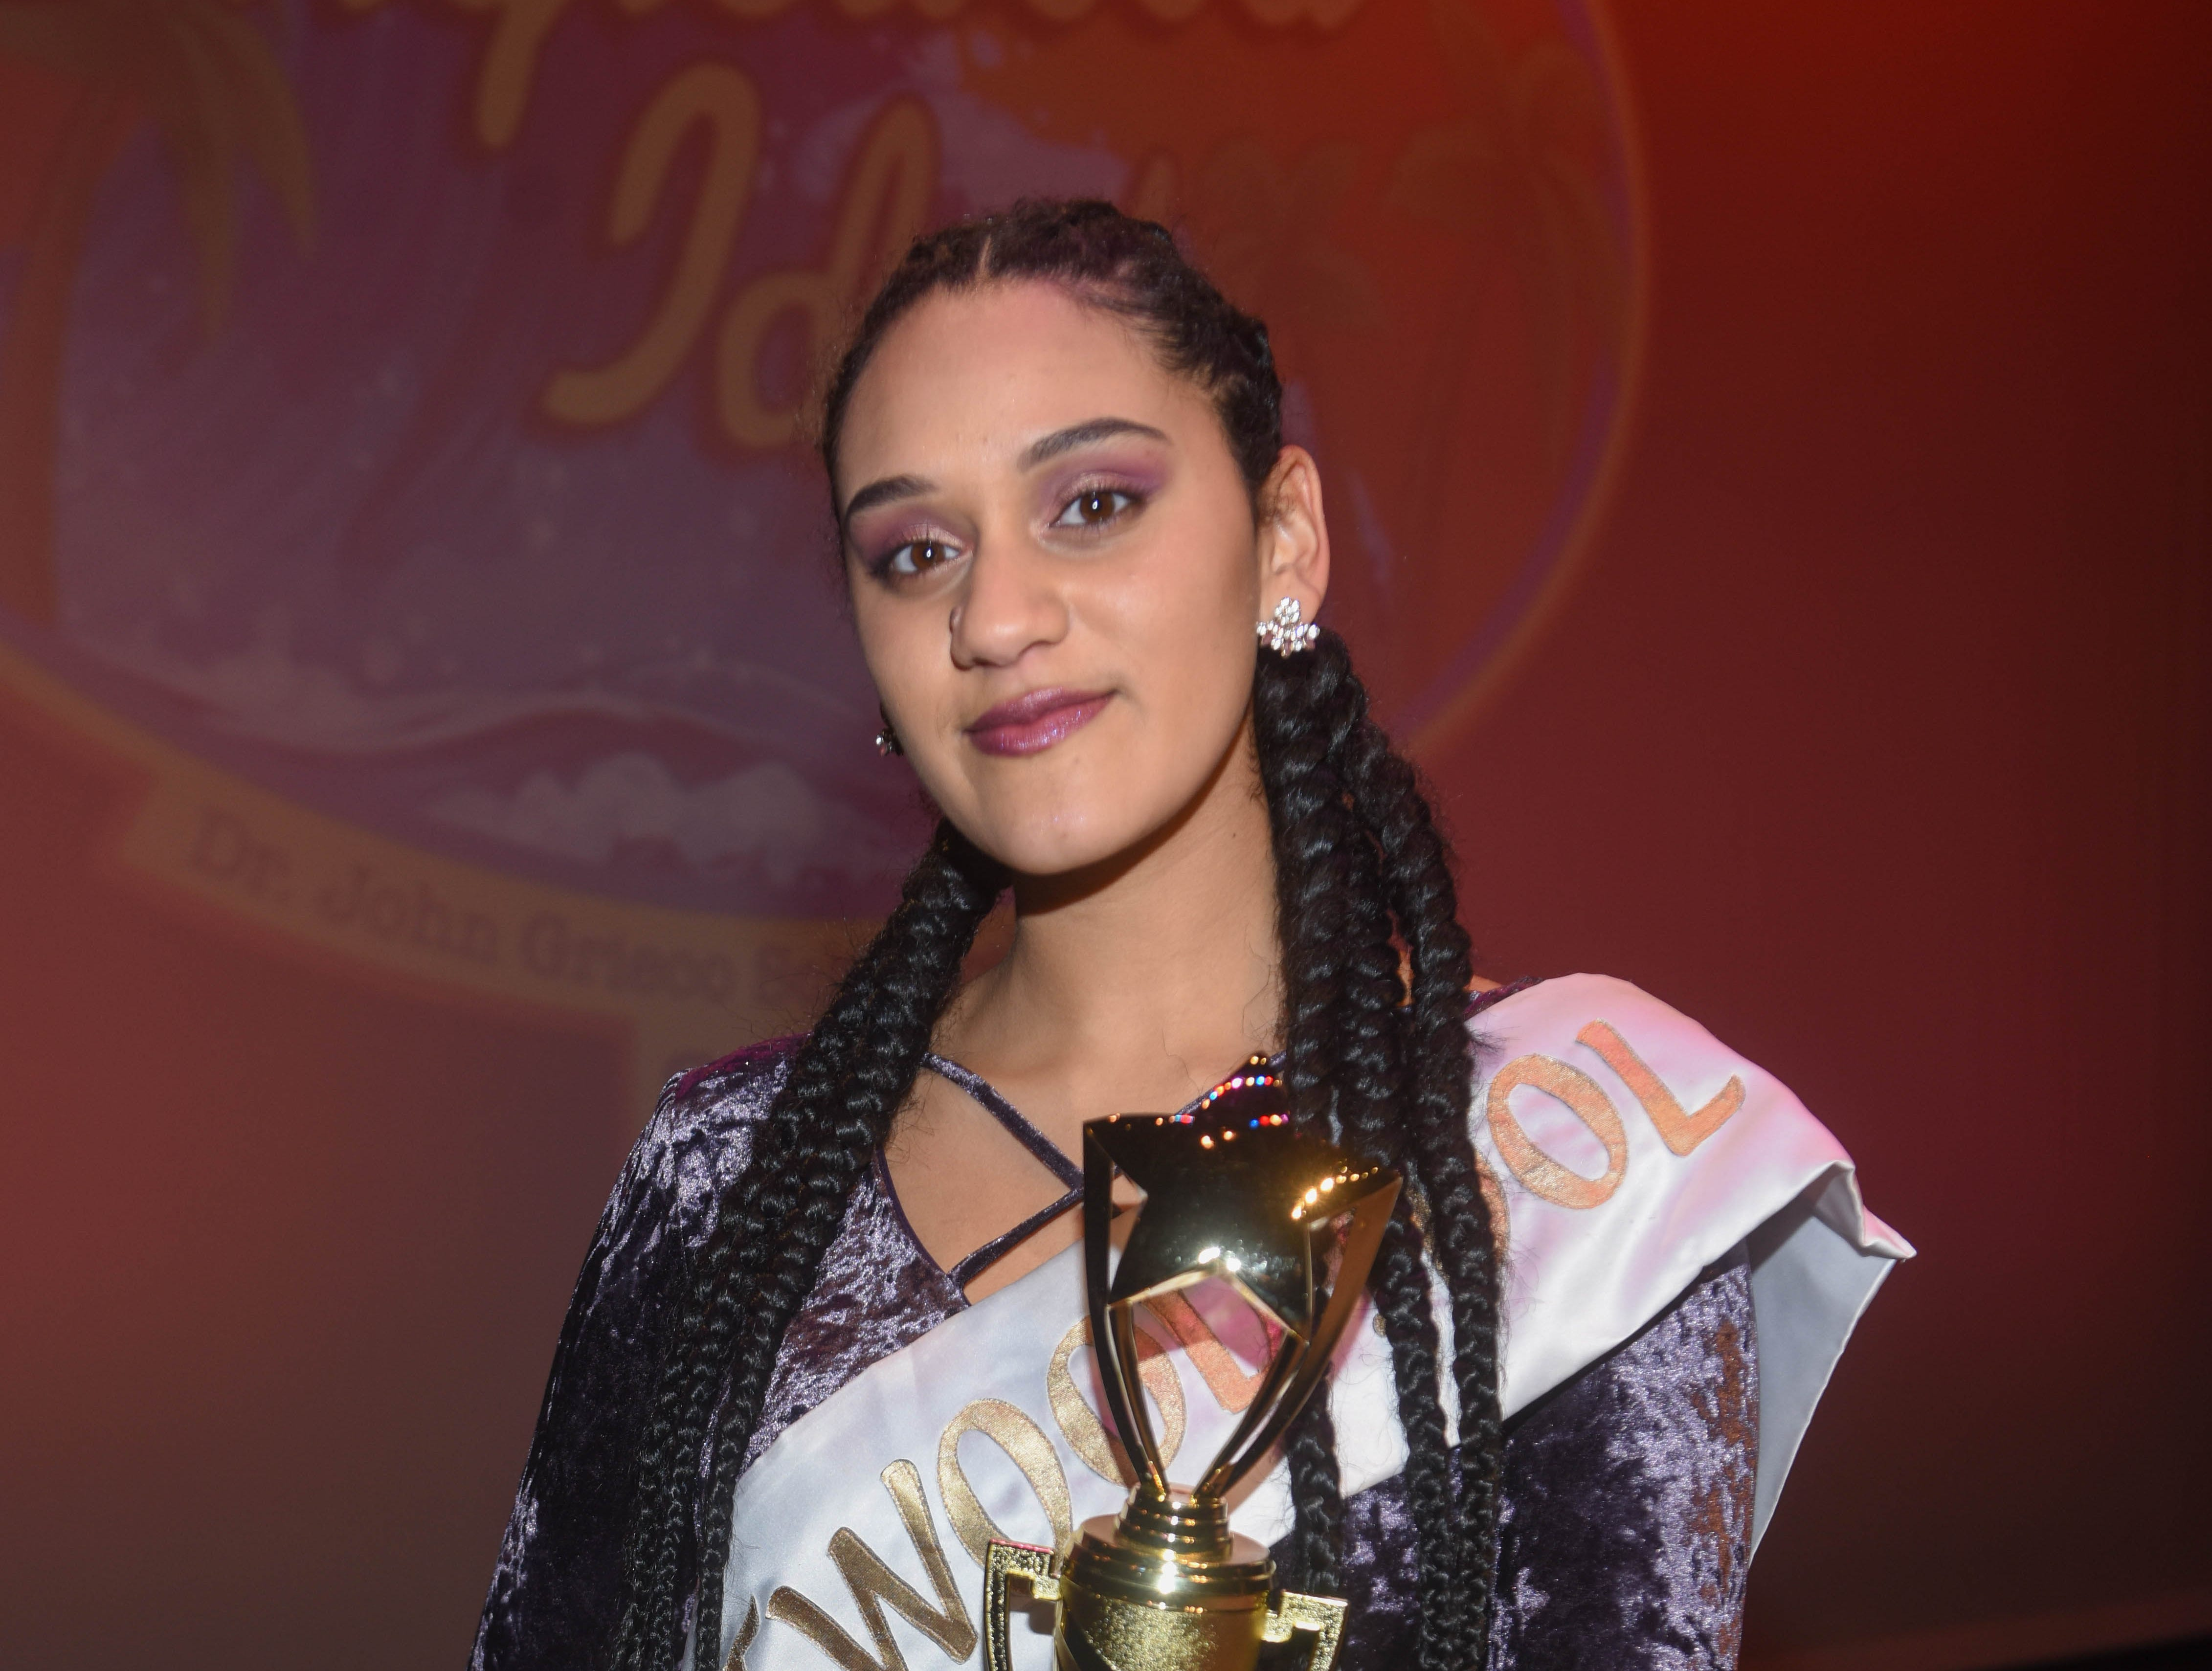 Genesis Capellan (2019 Englewood Idol Winner). The 2019 Englewood Idol was held at bergenPAC theater. The singing competition is open to any high school student who currently lives or goes to school in Englewood, NJ. This years winner was Genesis Capellan. 01/11/2019